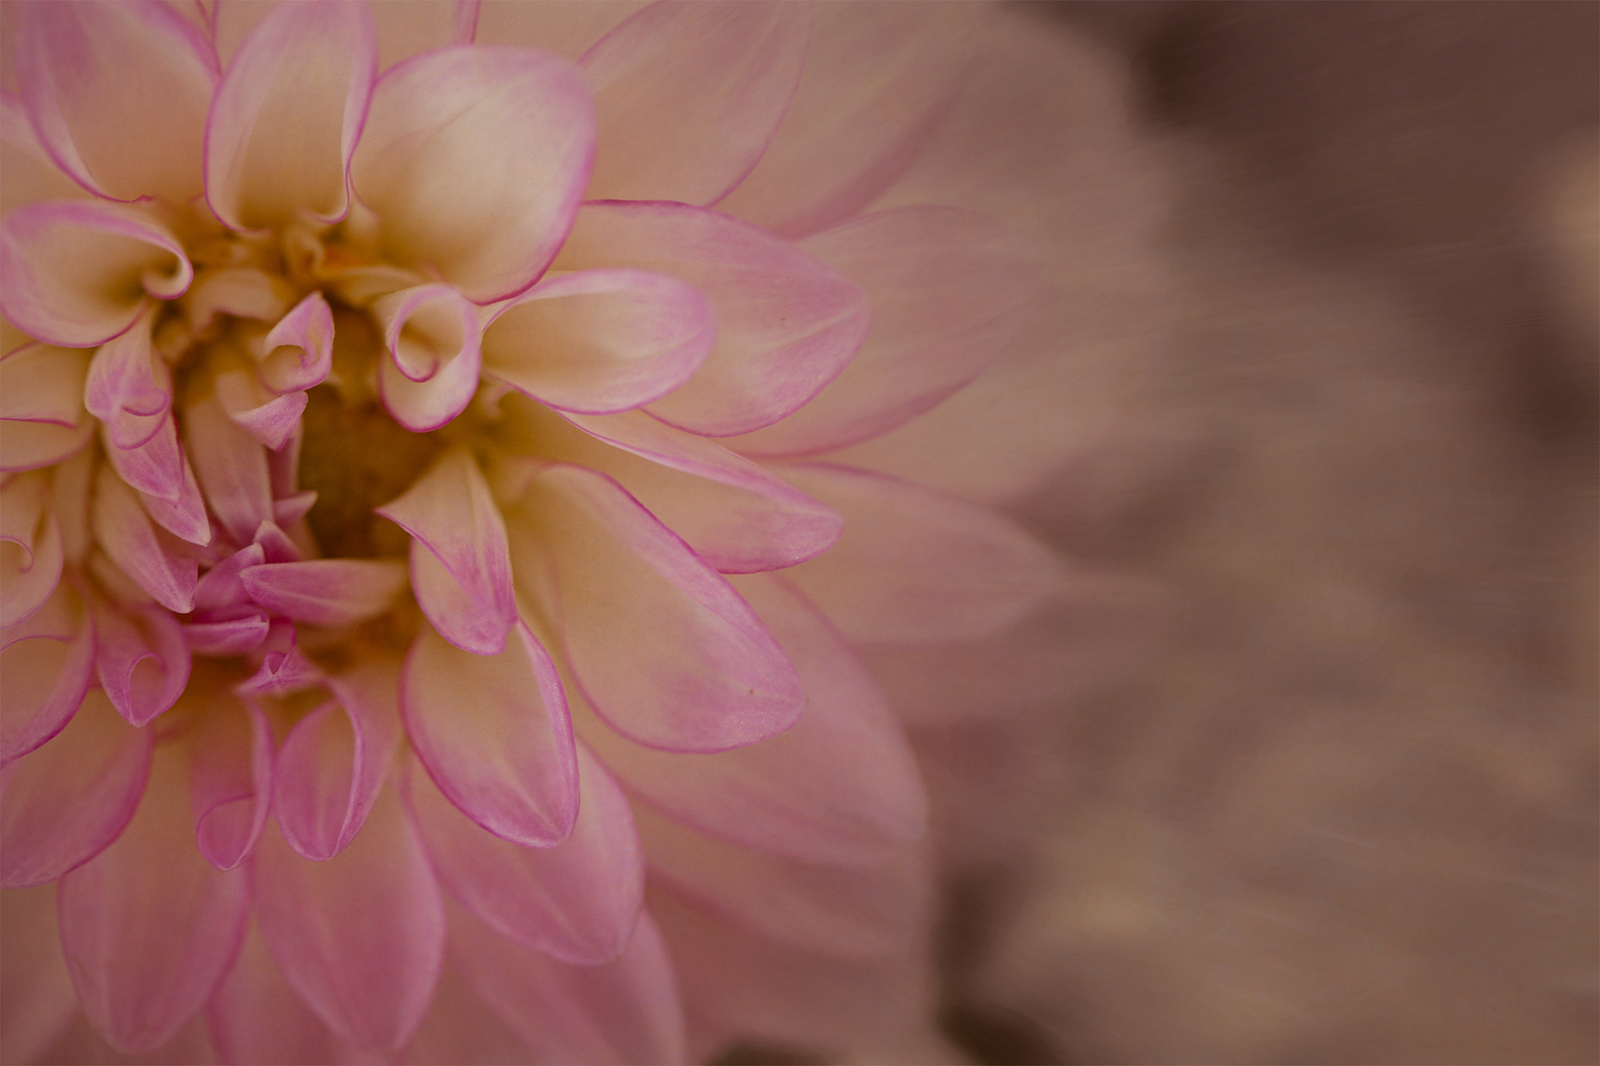 Image of a pink chrysanthemum after processing with textures